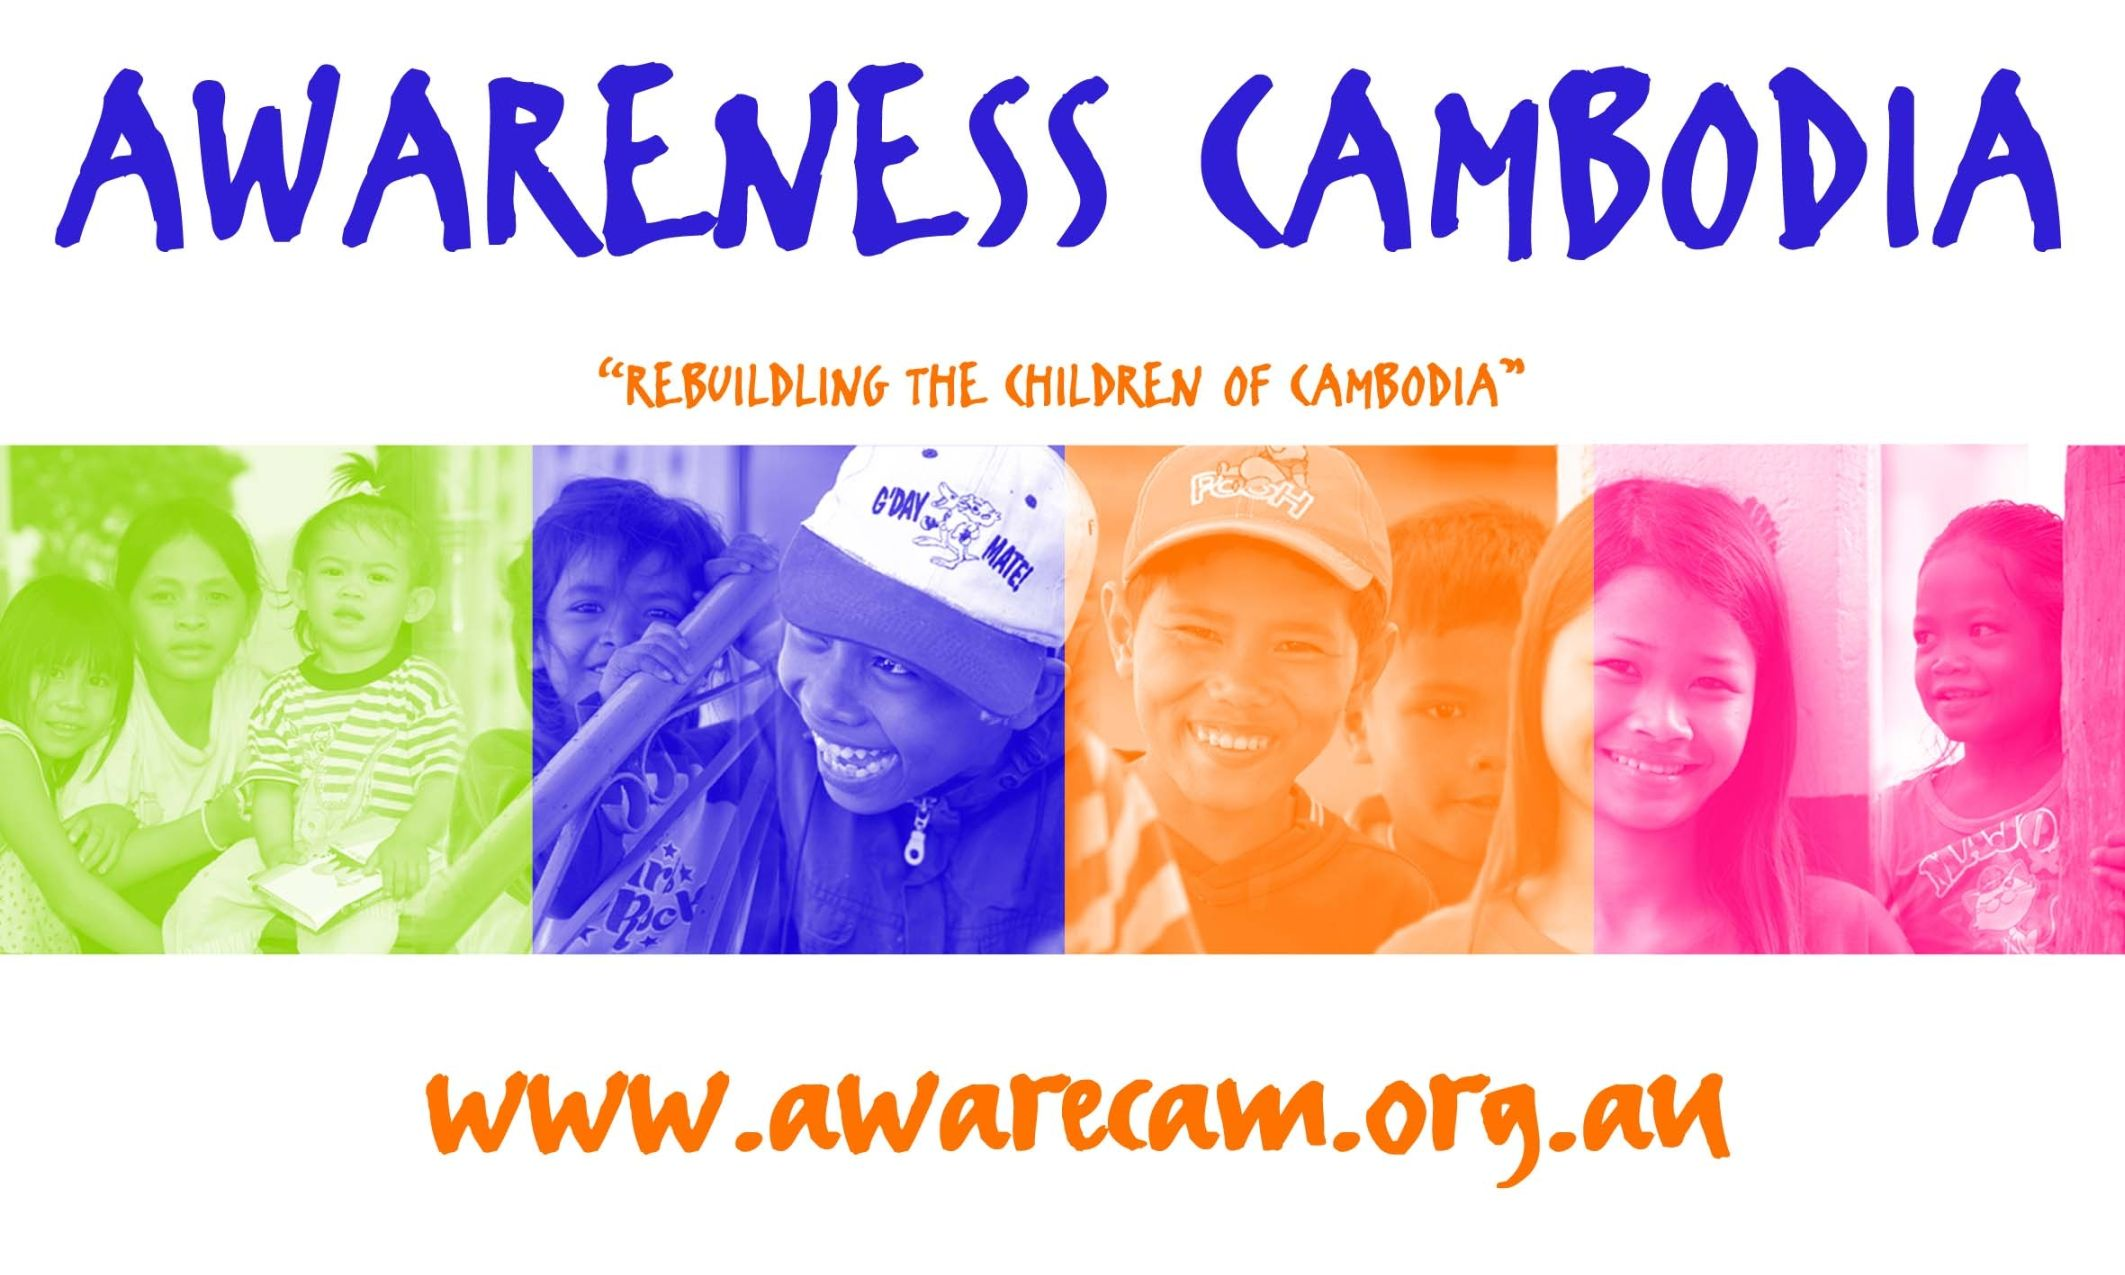 Laugh and Play Outdoors donate 8% of sales to Awareness Cambodia